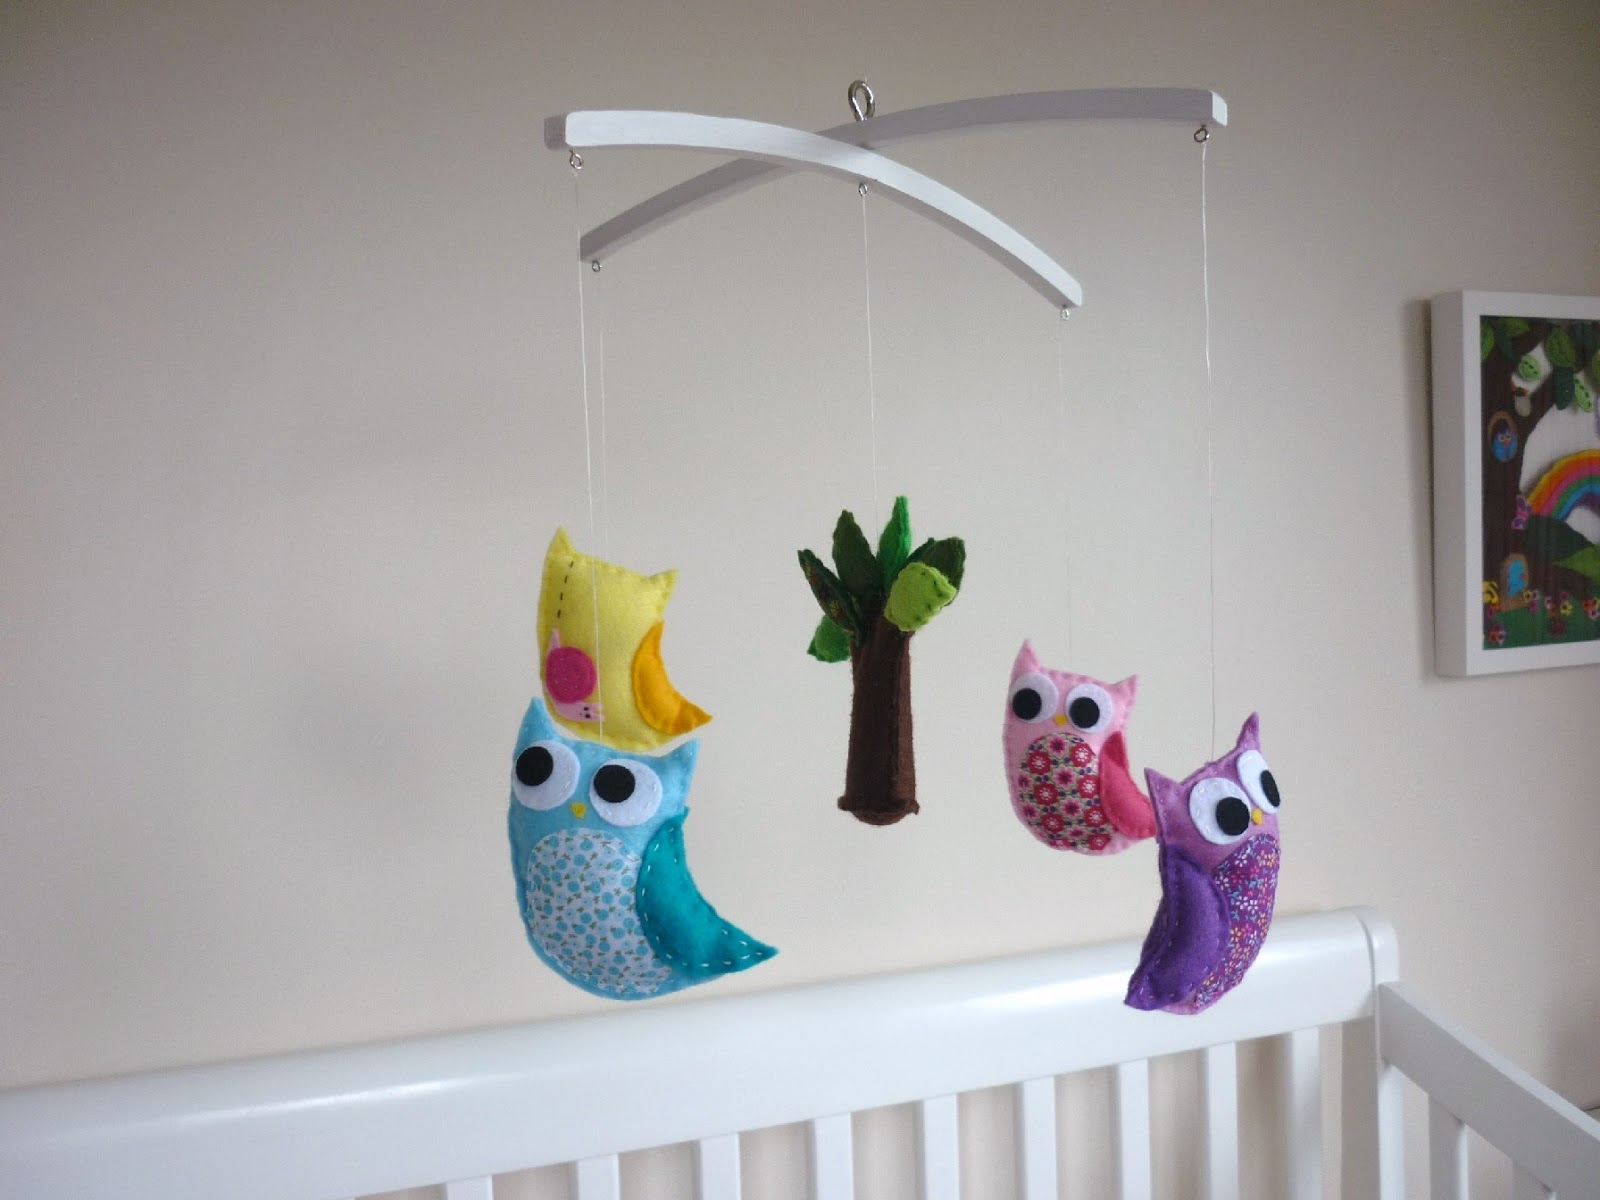 Maisie moo new owl and wee critter friends baby mobile for Diy baby mobile felt